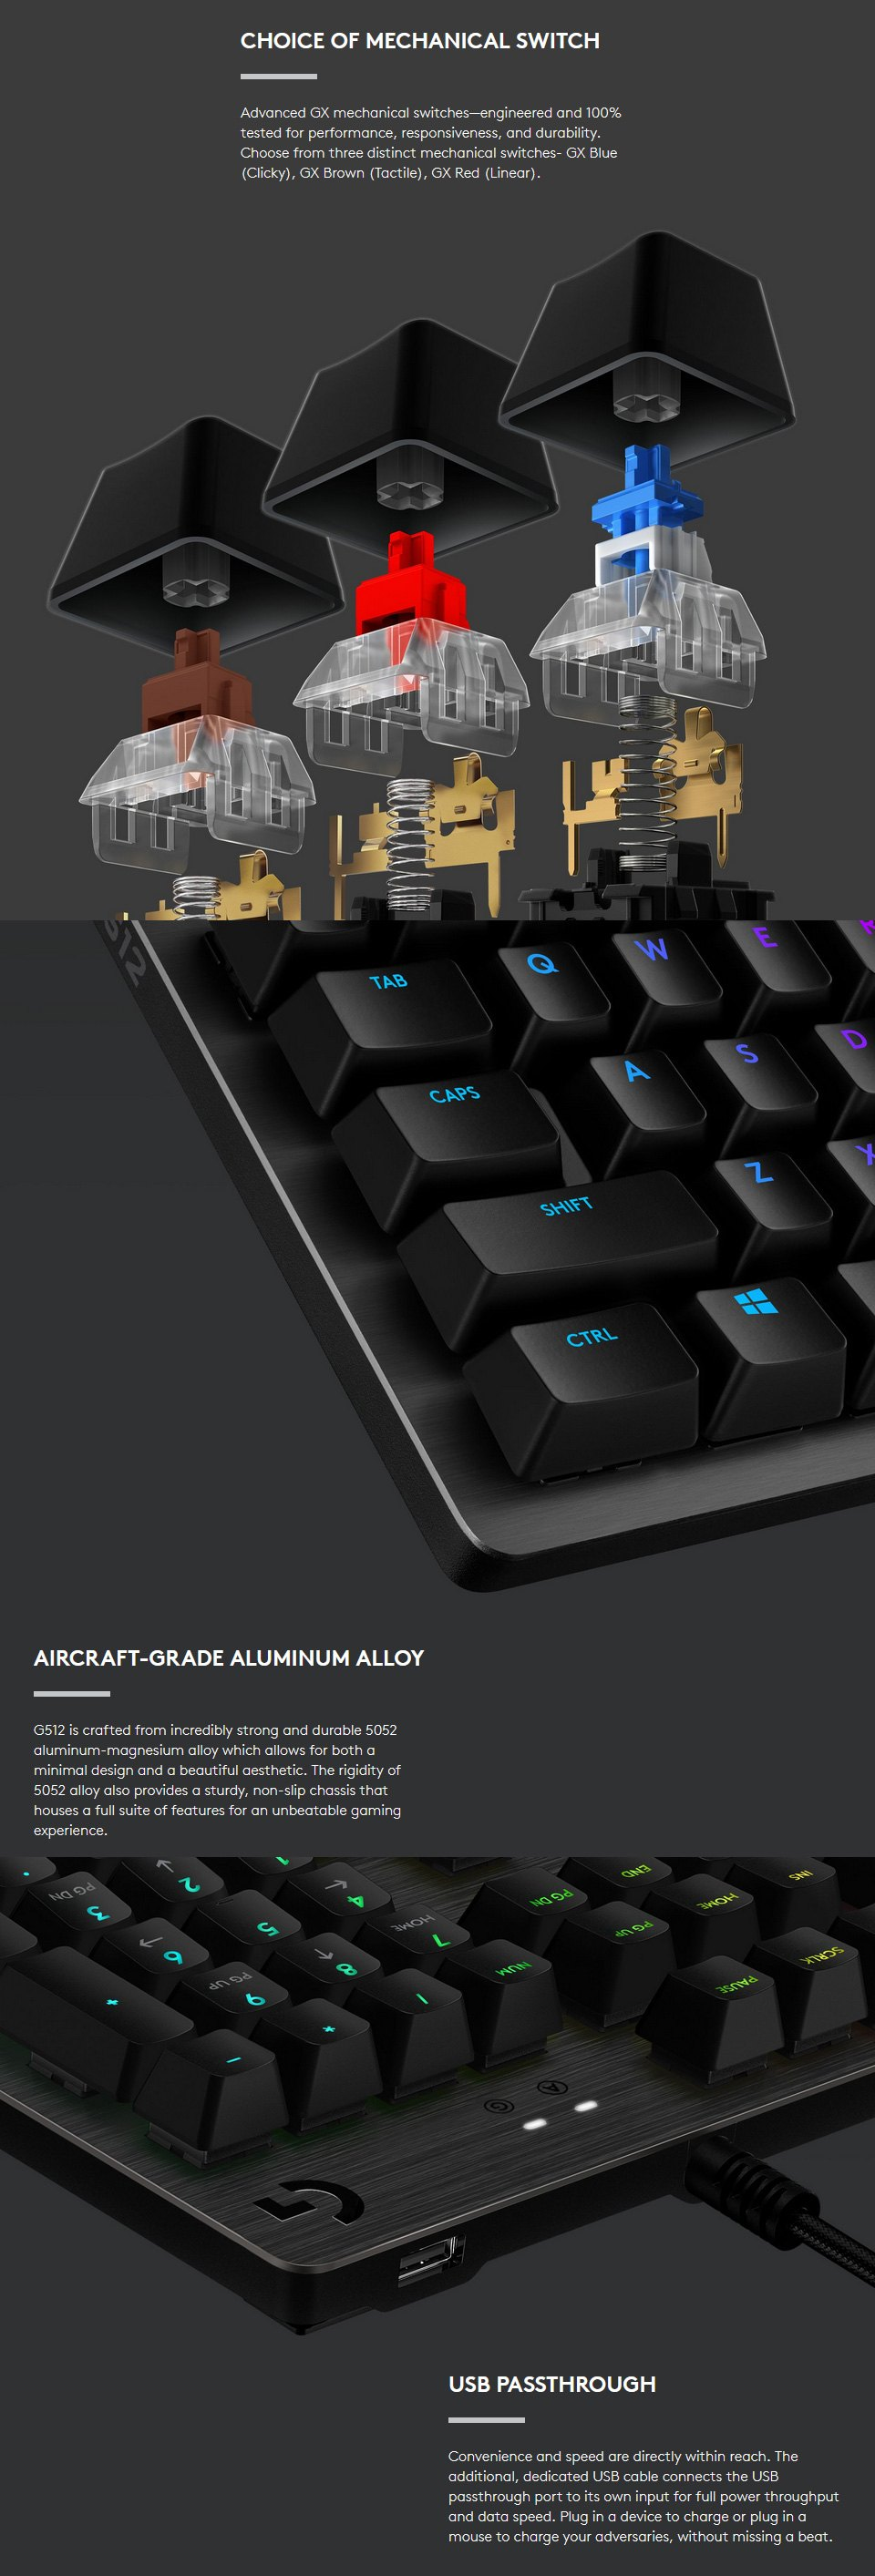 Logitech G512 Carbon RGB Mechanical Keyboard GX Red features 2